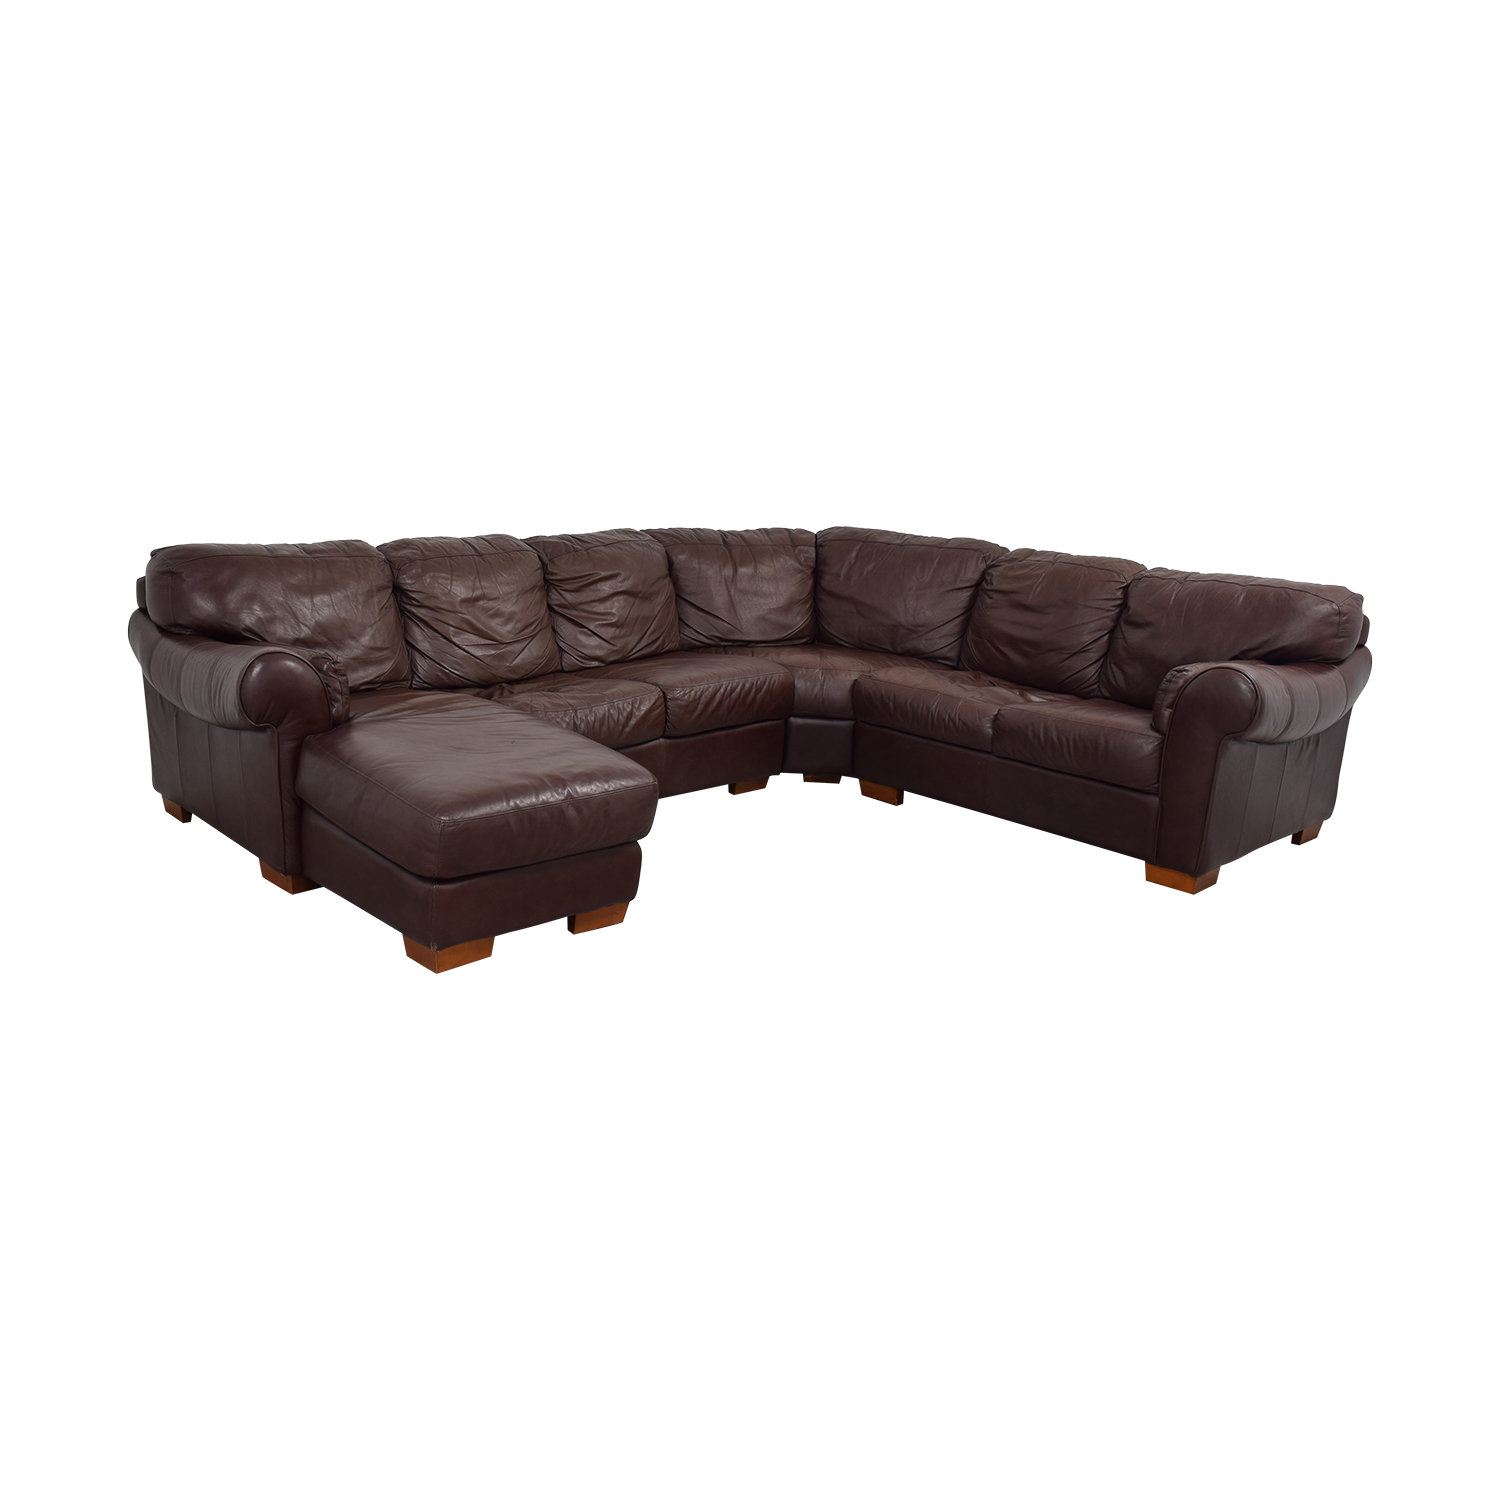 Divani E Divani O Chateau D Ax.89 Off Chateau D Ax Chateau D Ax Divani Brown Leather L Sectional Couch With Chaise Sofas